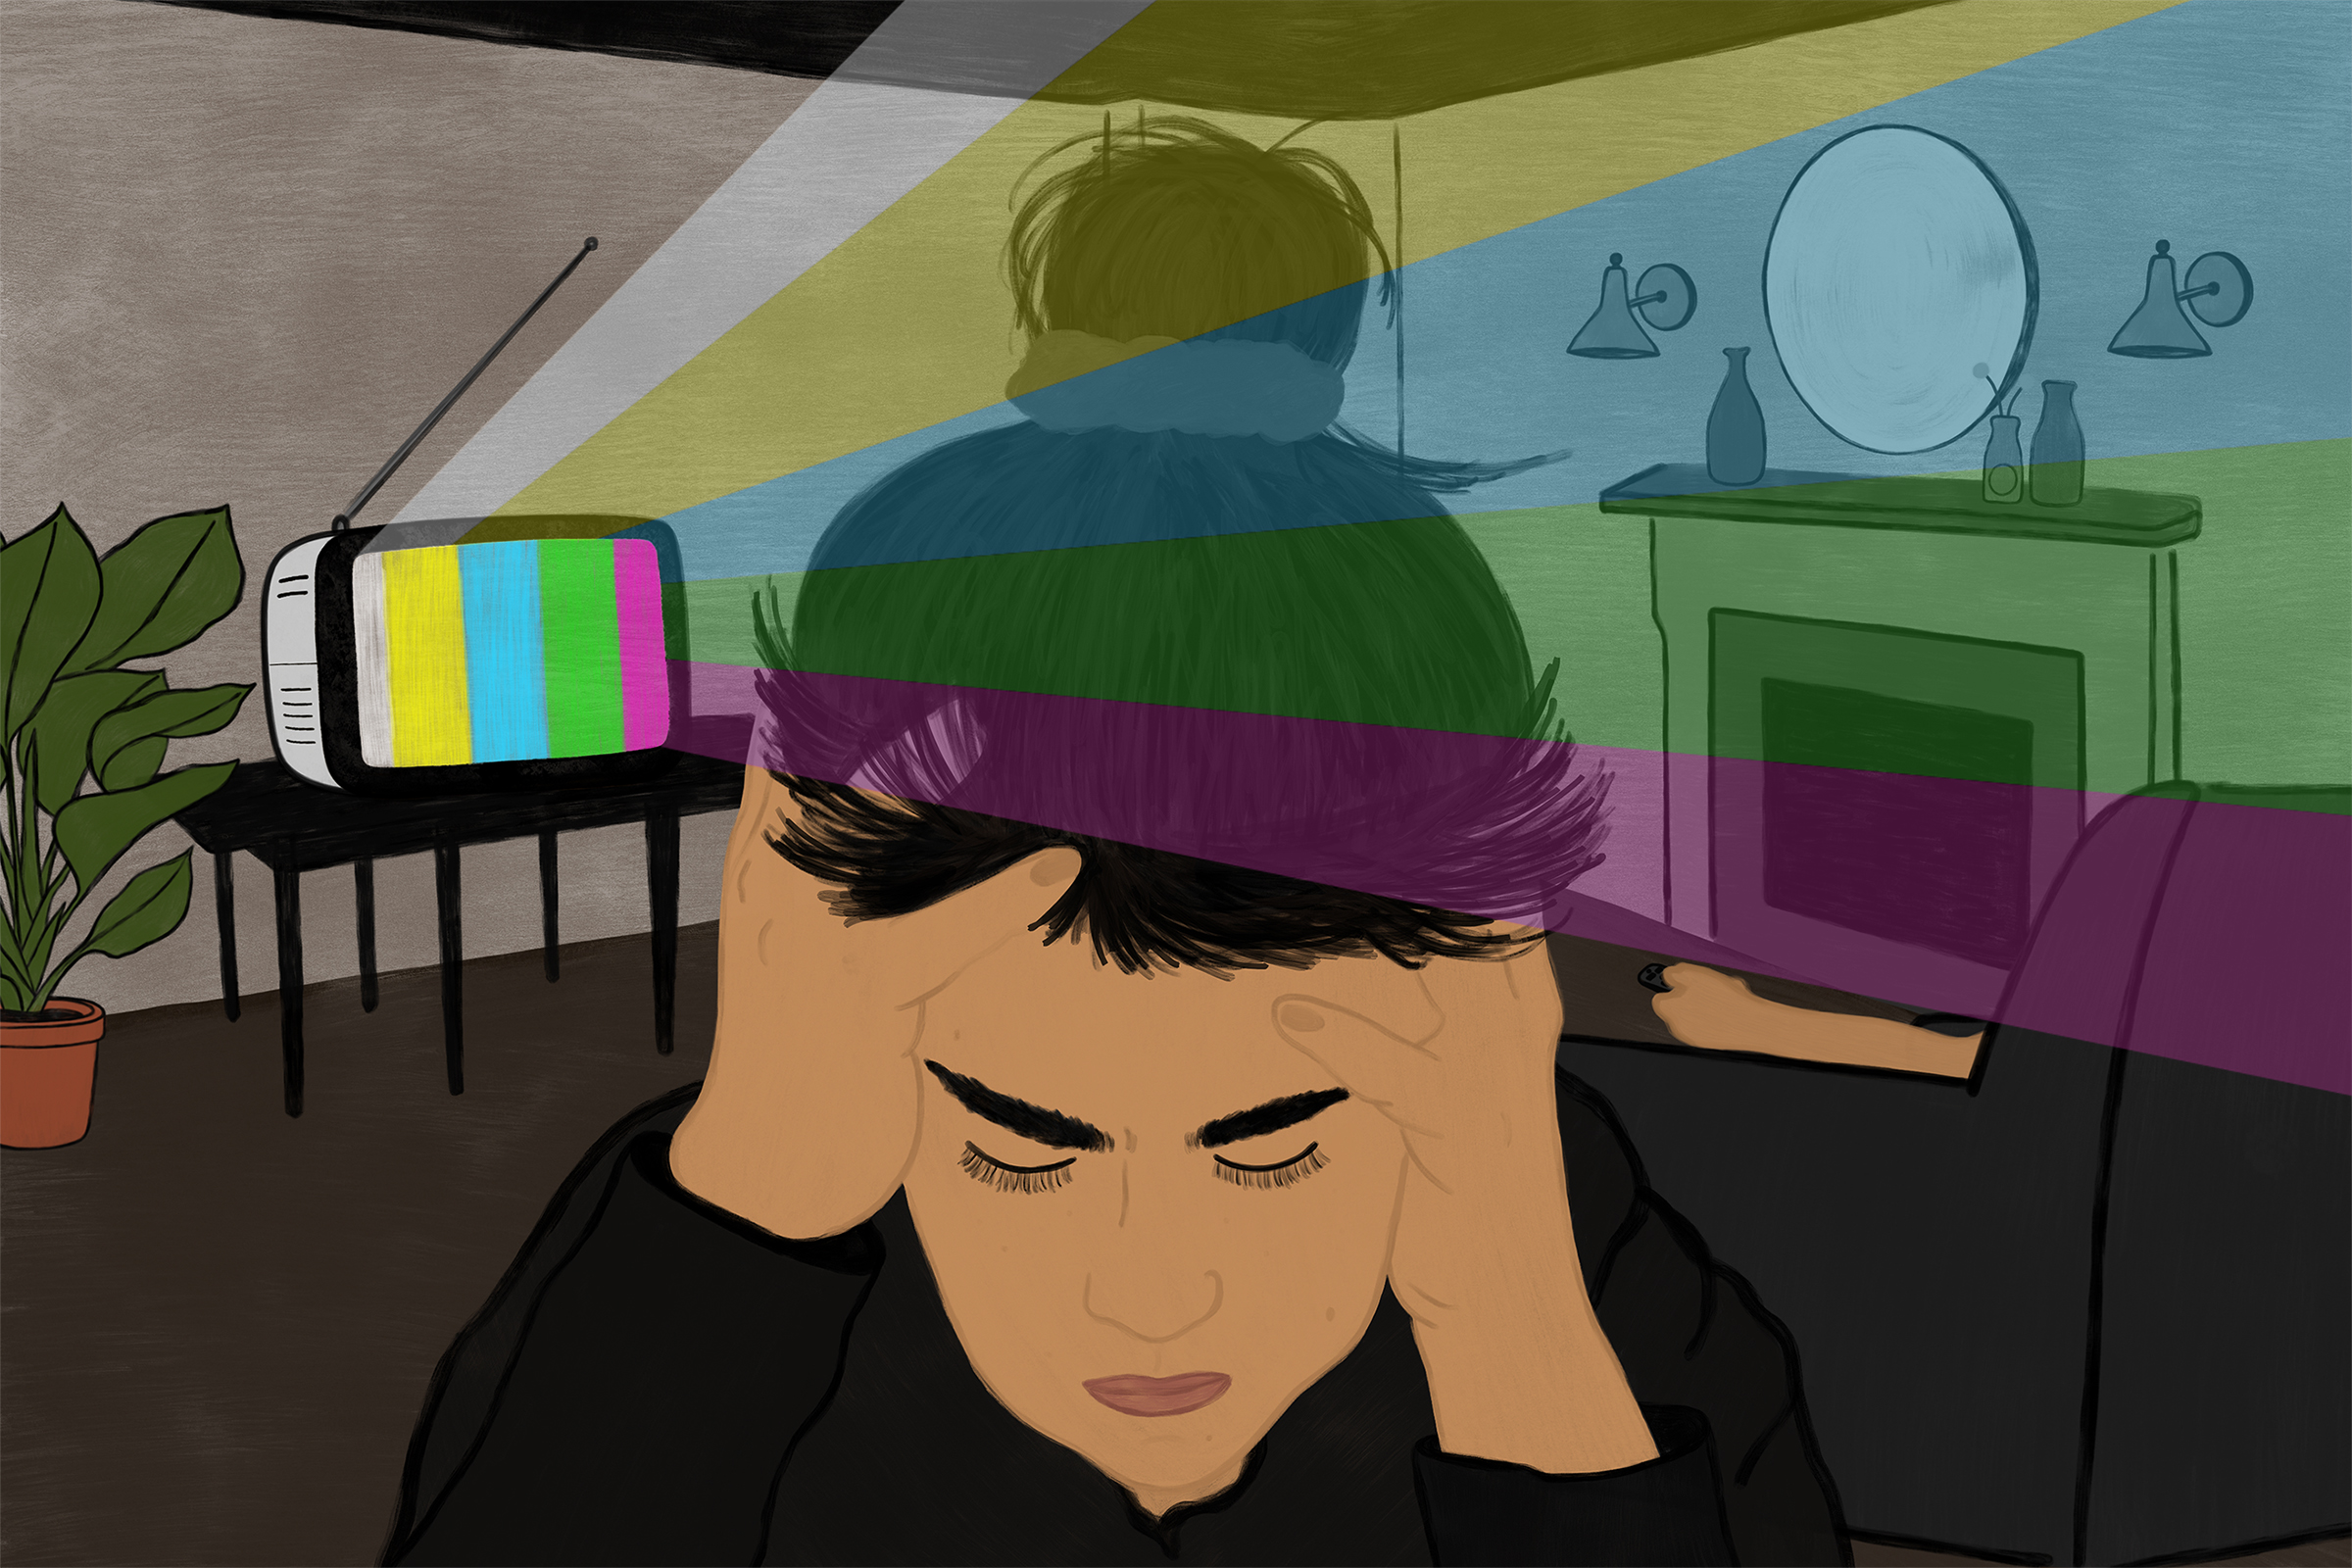 illustration of a light-skinned person with their black hair in a bun holding their head in their hands, eyes closed, as the television blares in the background